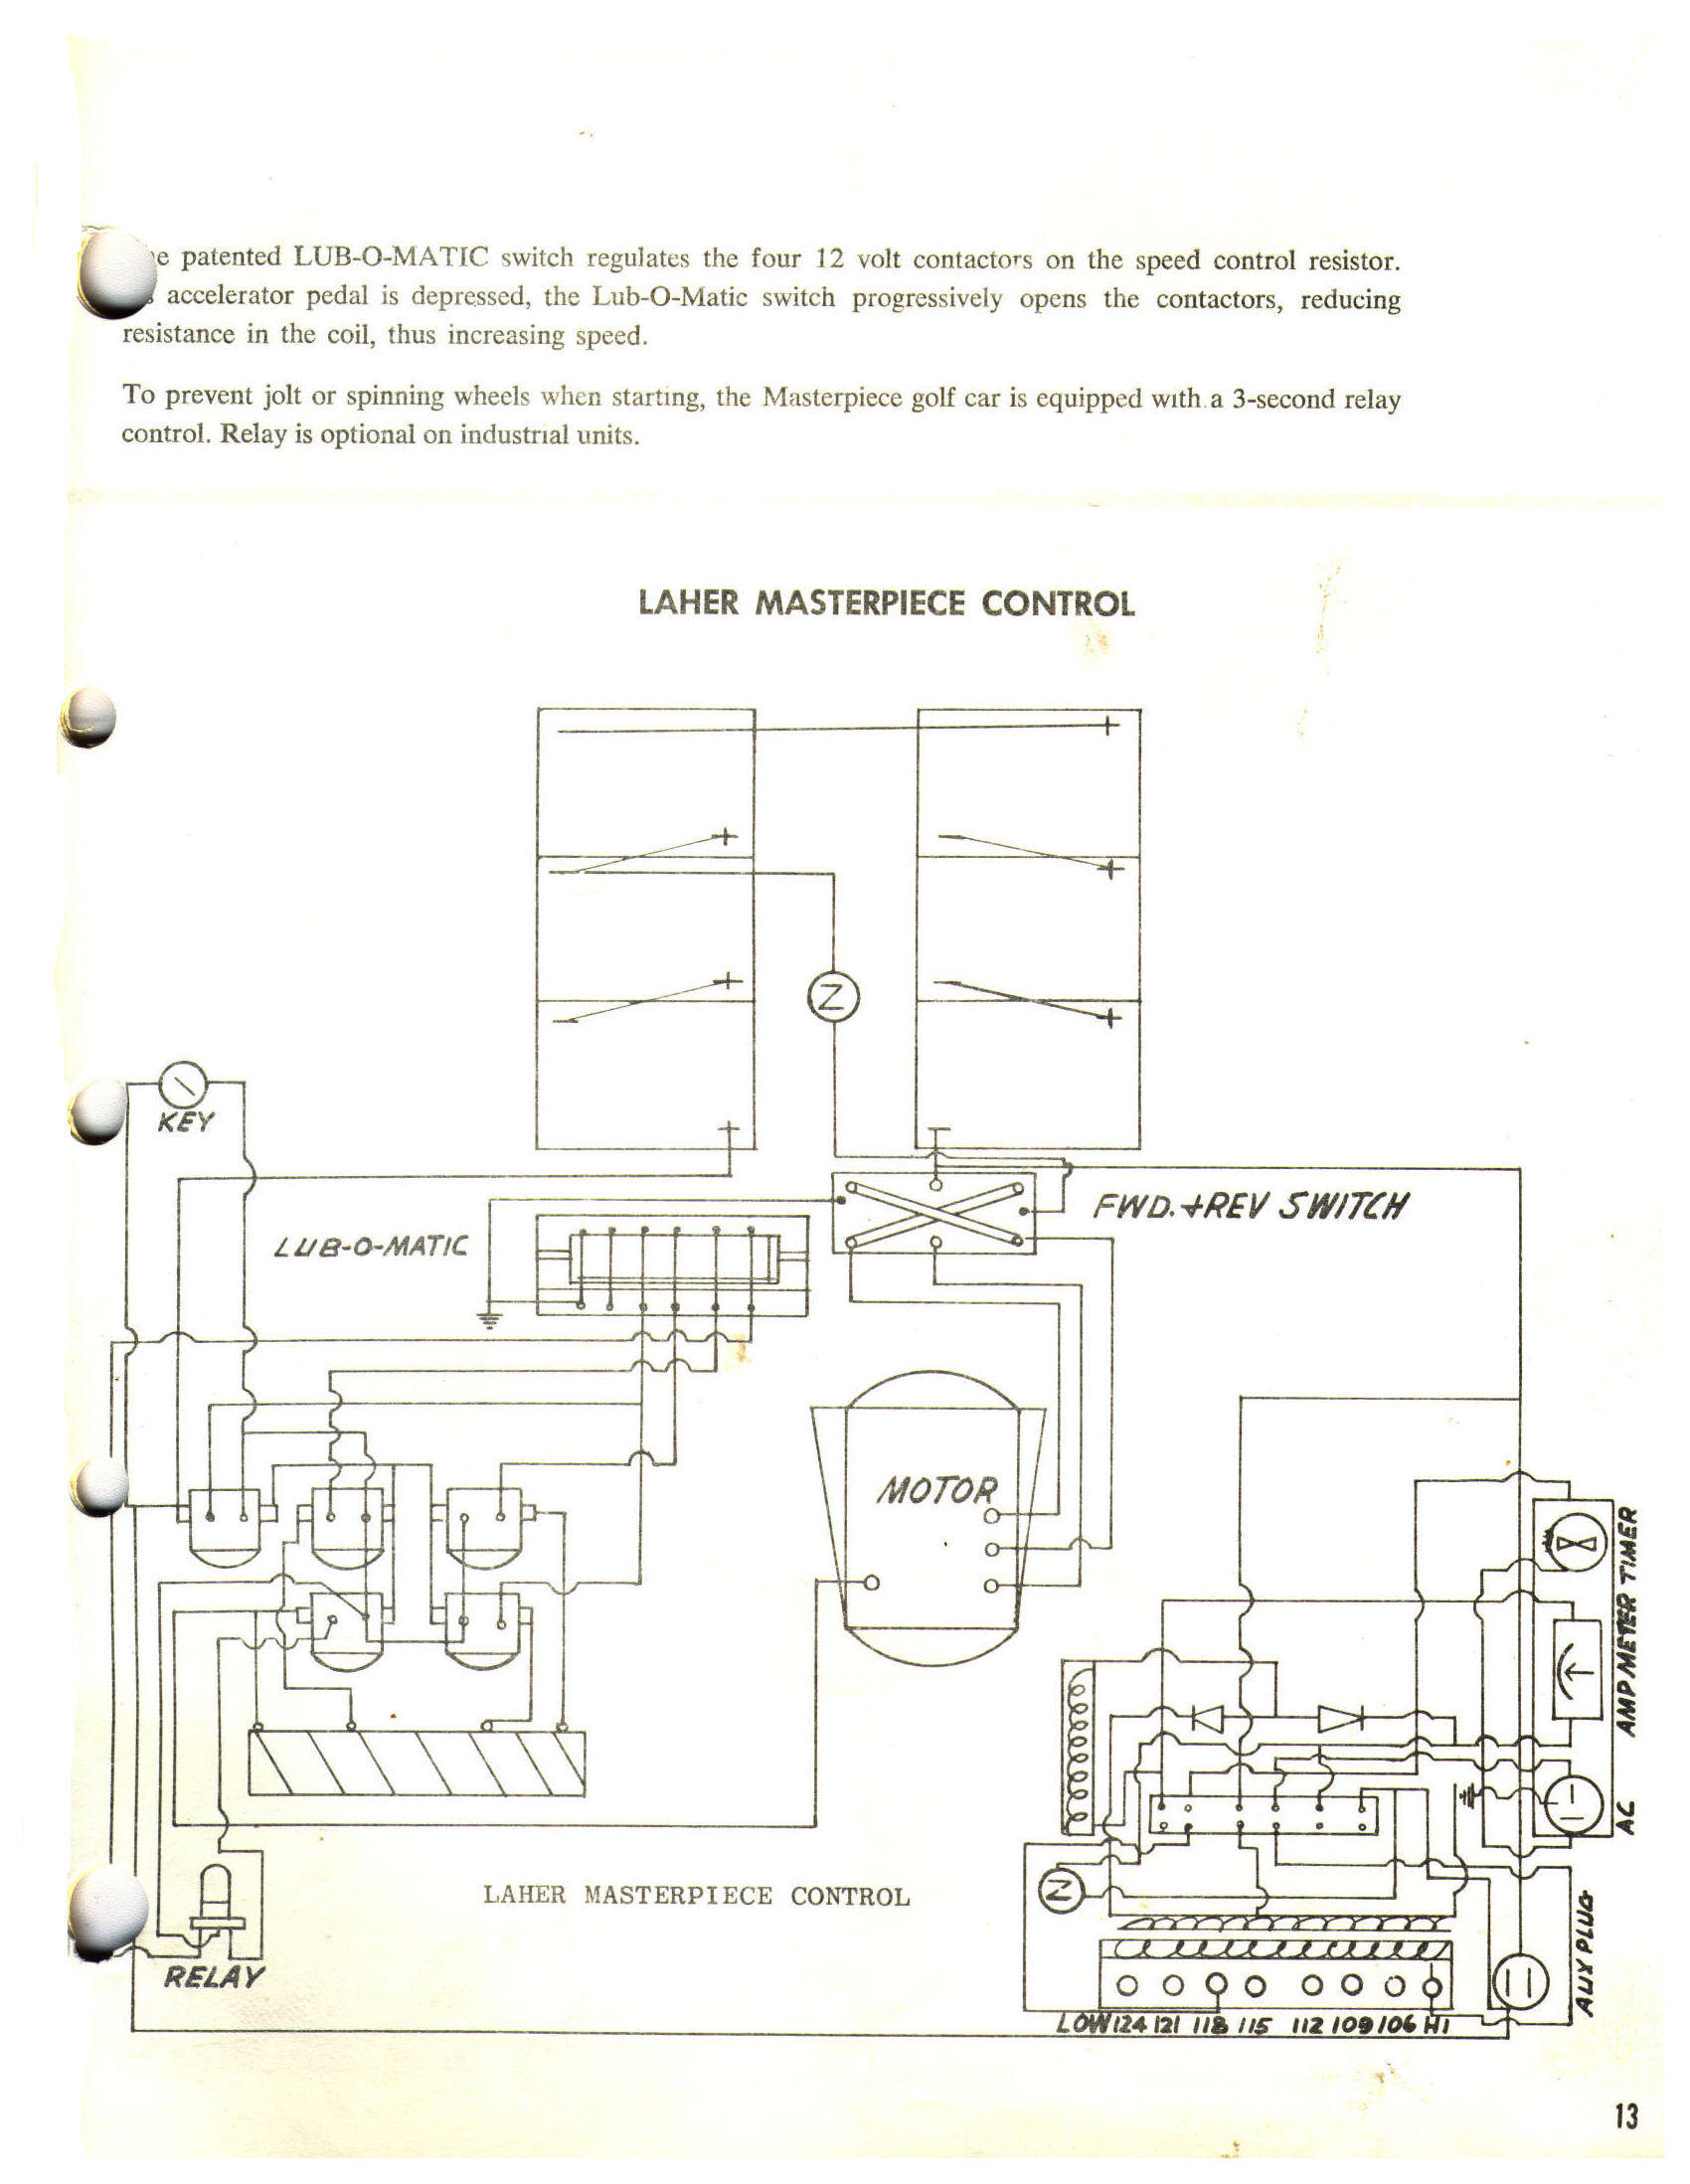 Wiring Diagram Melex Golfcart 512 And Schematics Golf Cart Lights Gas Amusing Pictures Best